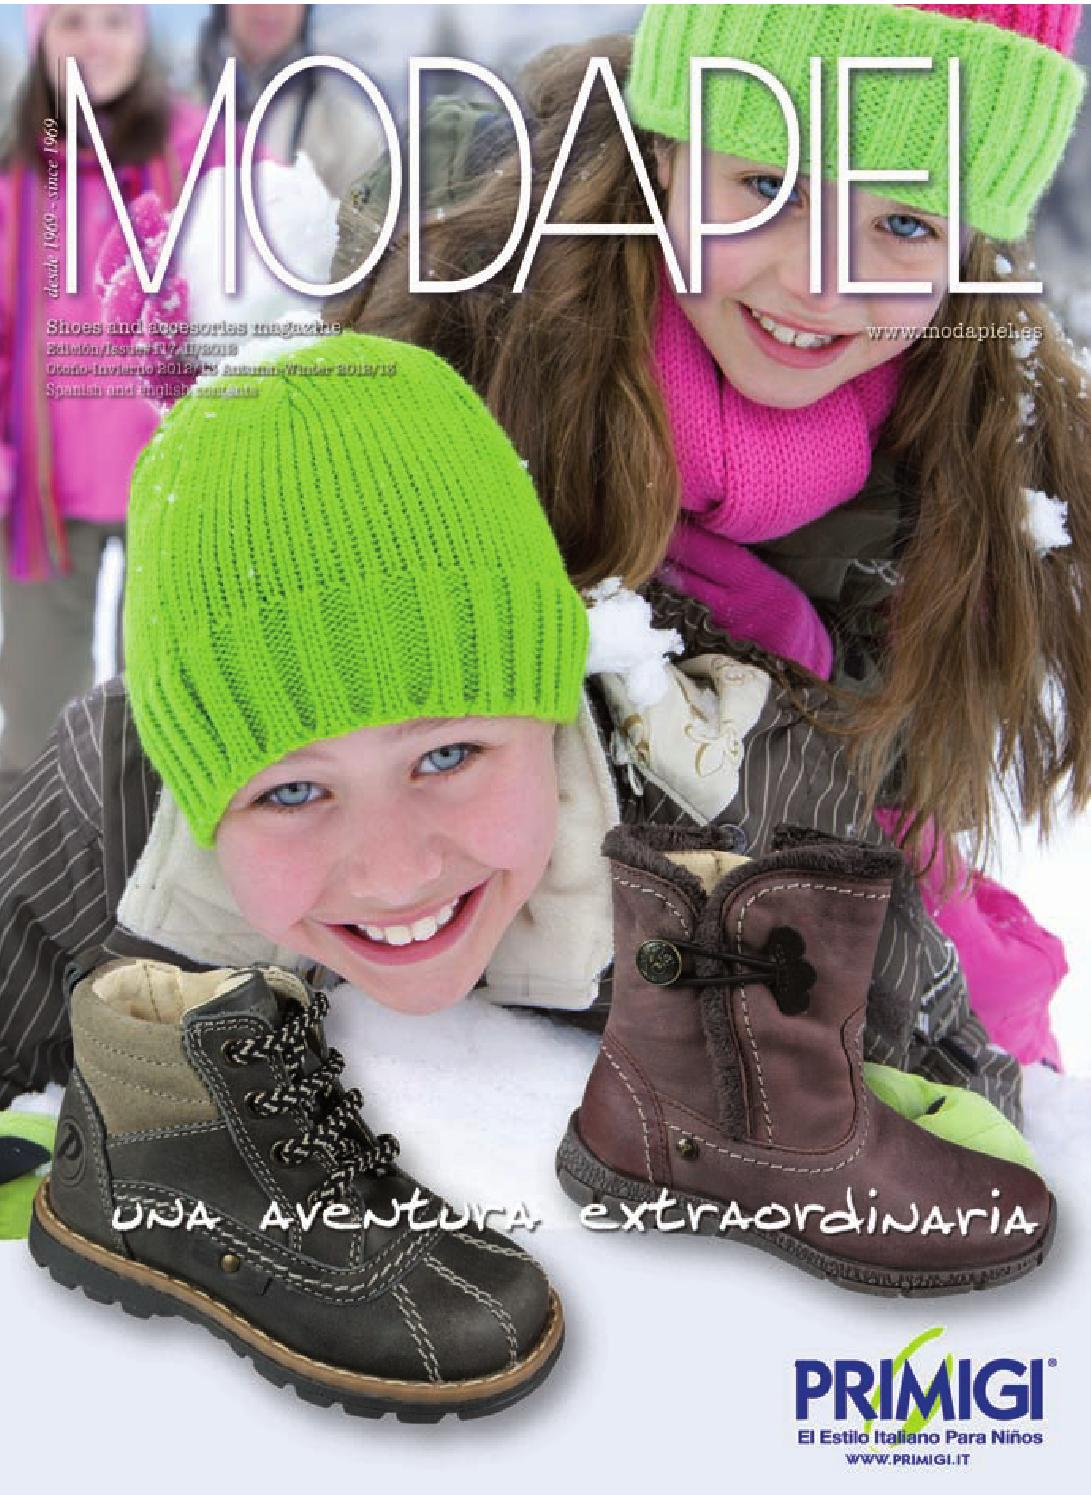 separation shoes 4dd22 1fb00 Modapiel 117 Shoes and accessories magazine by Prensa Técnica S.L. - issuu